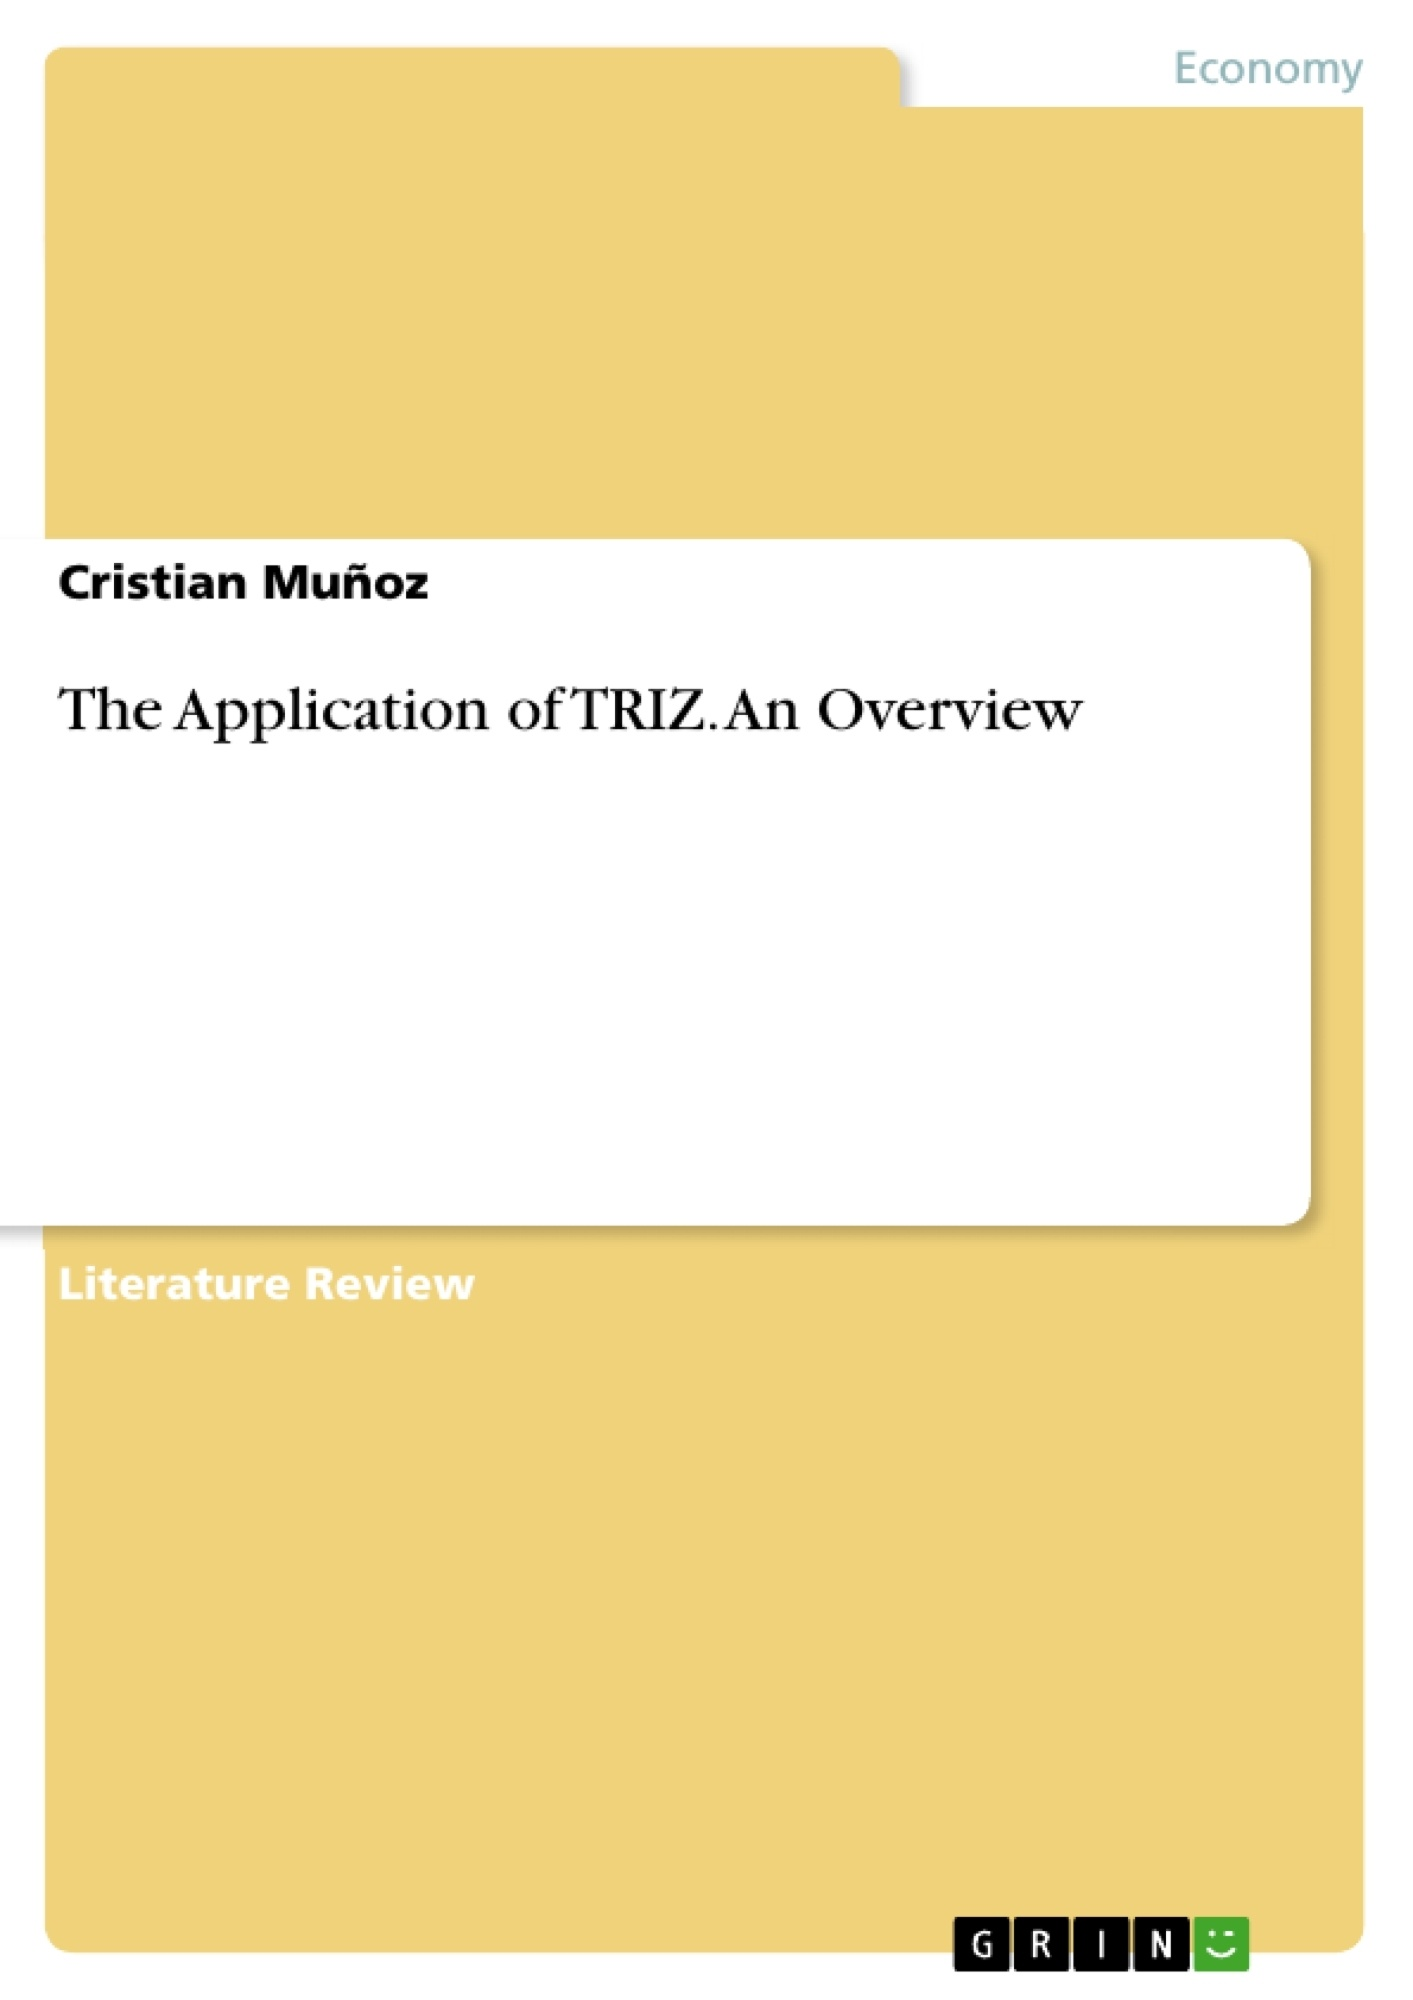 Title: The Application of TRIZ. An Overview